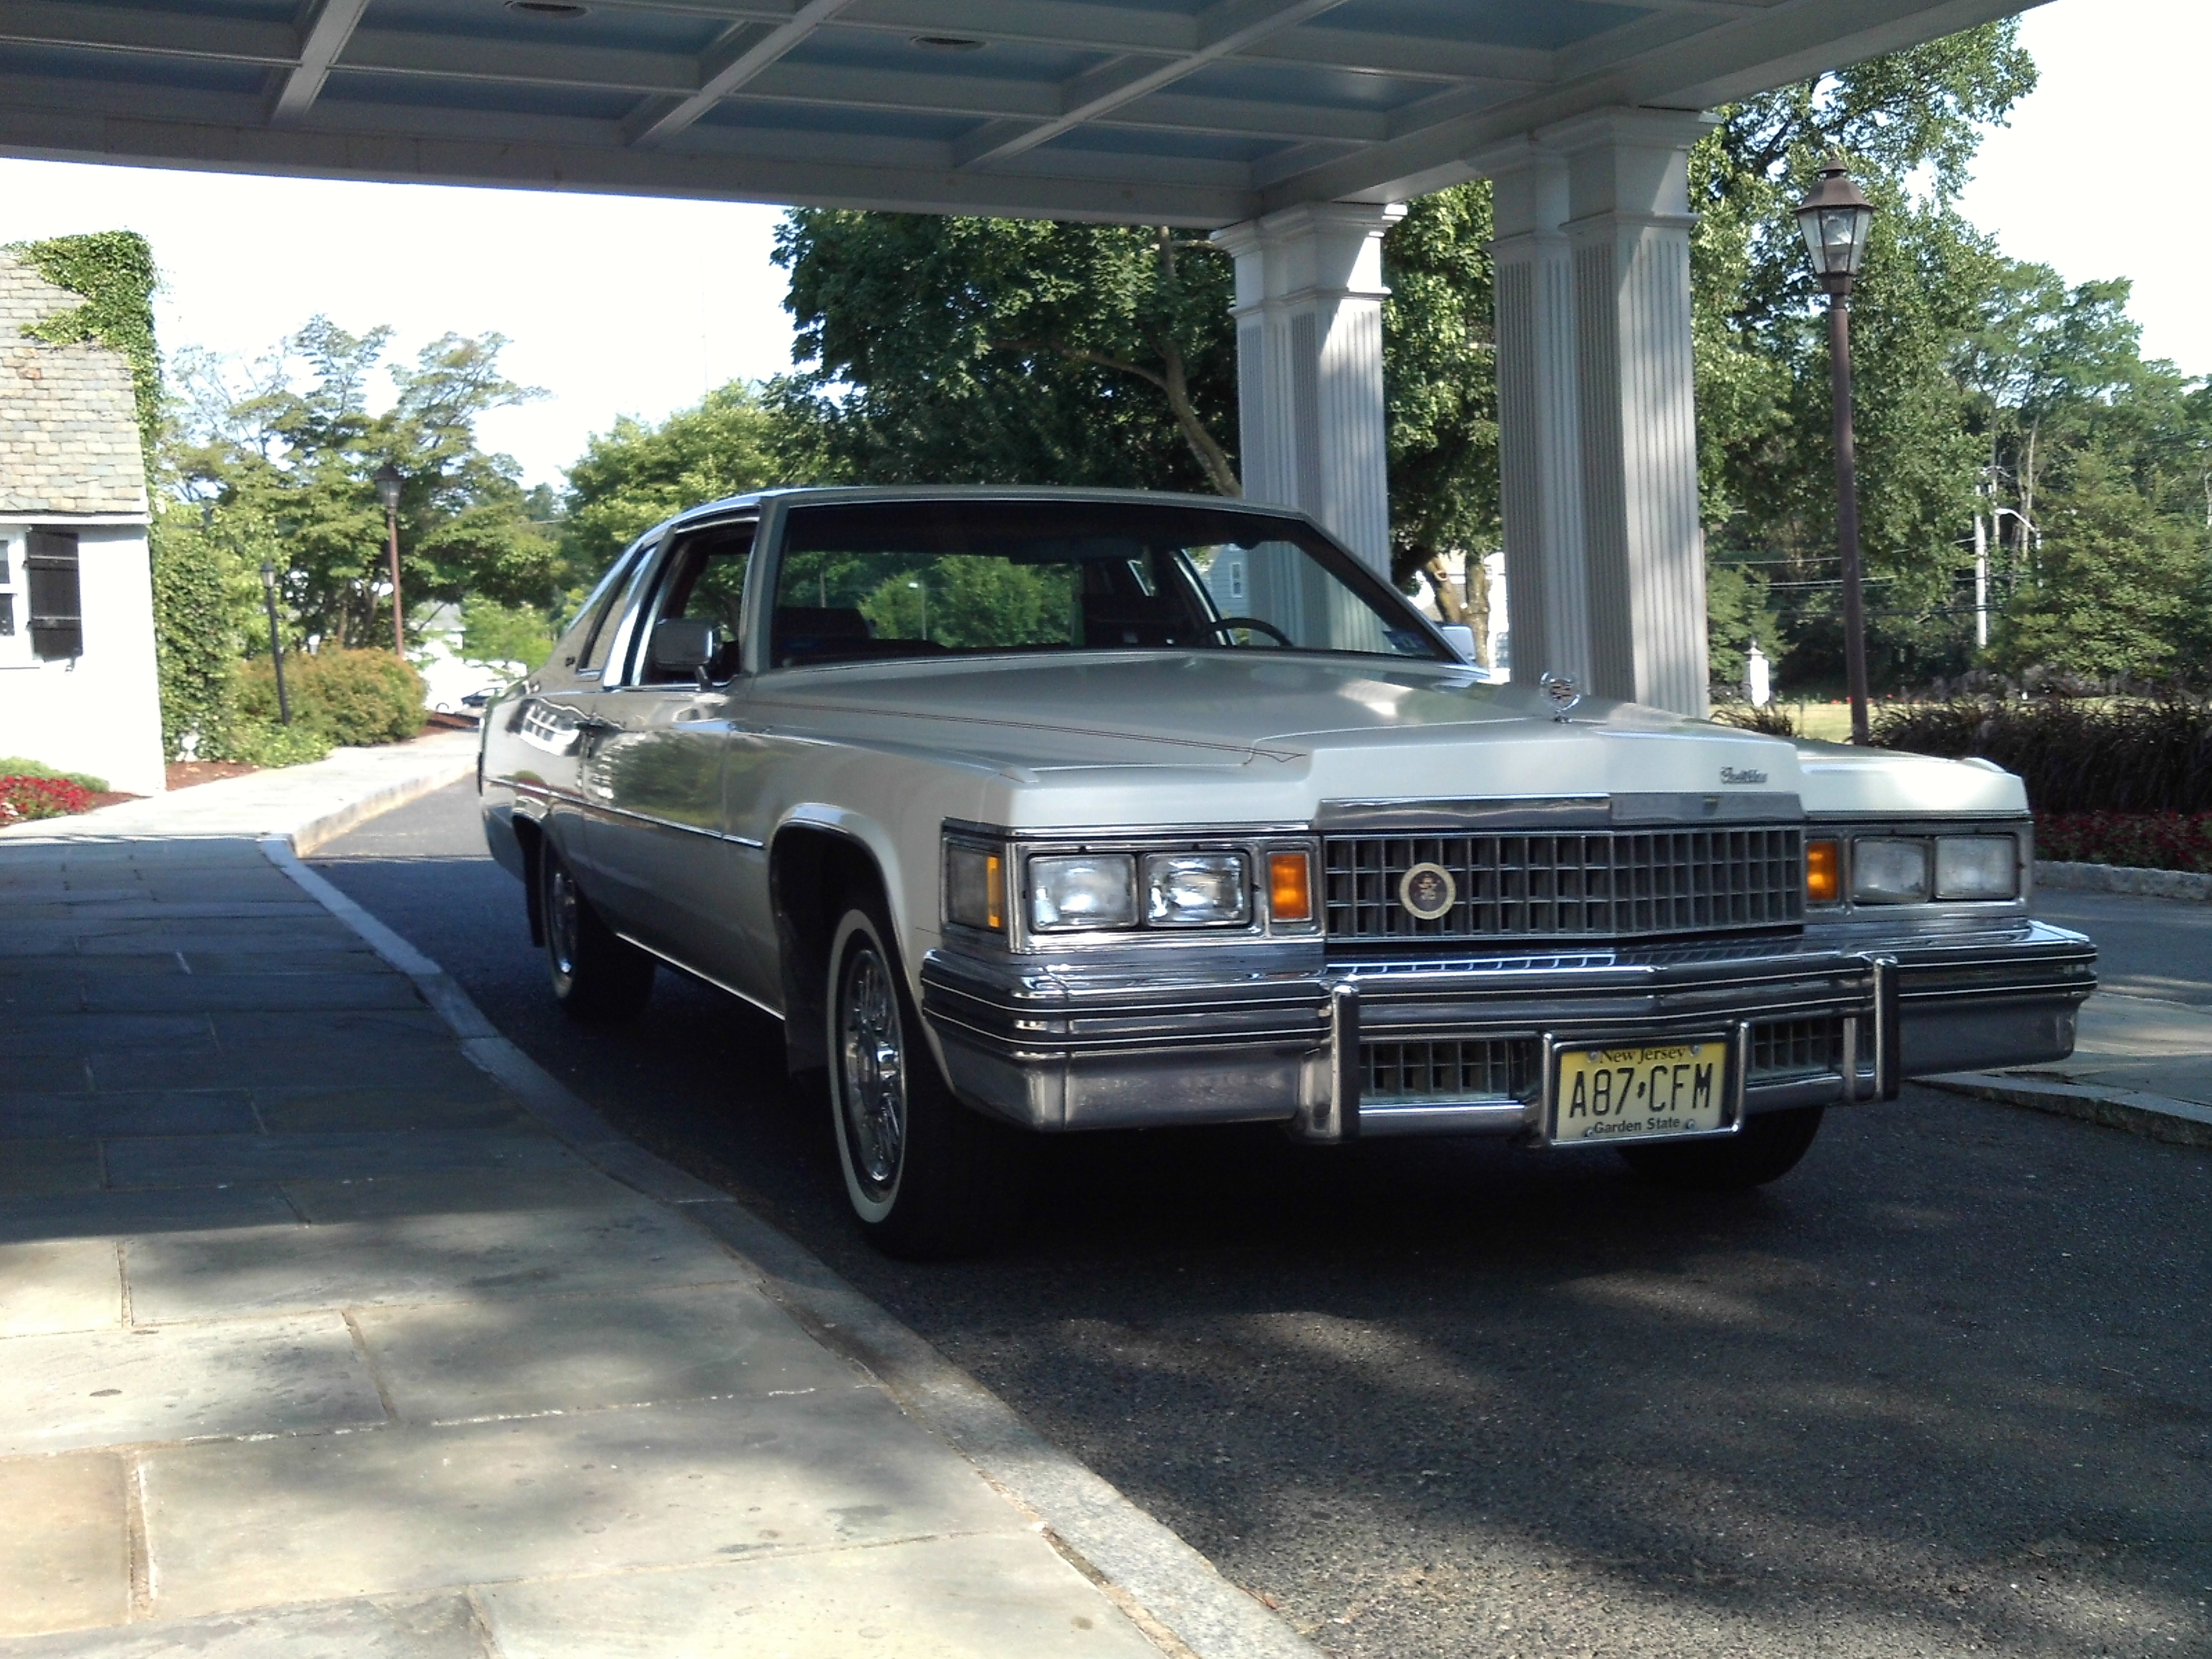 1978 Cadillac Sedan Deville Coupe Shadow Owner Rosemary Spicuzza Img 0455 0389 0406 0434 0429 0453